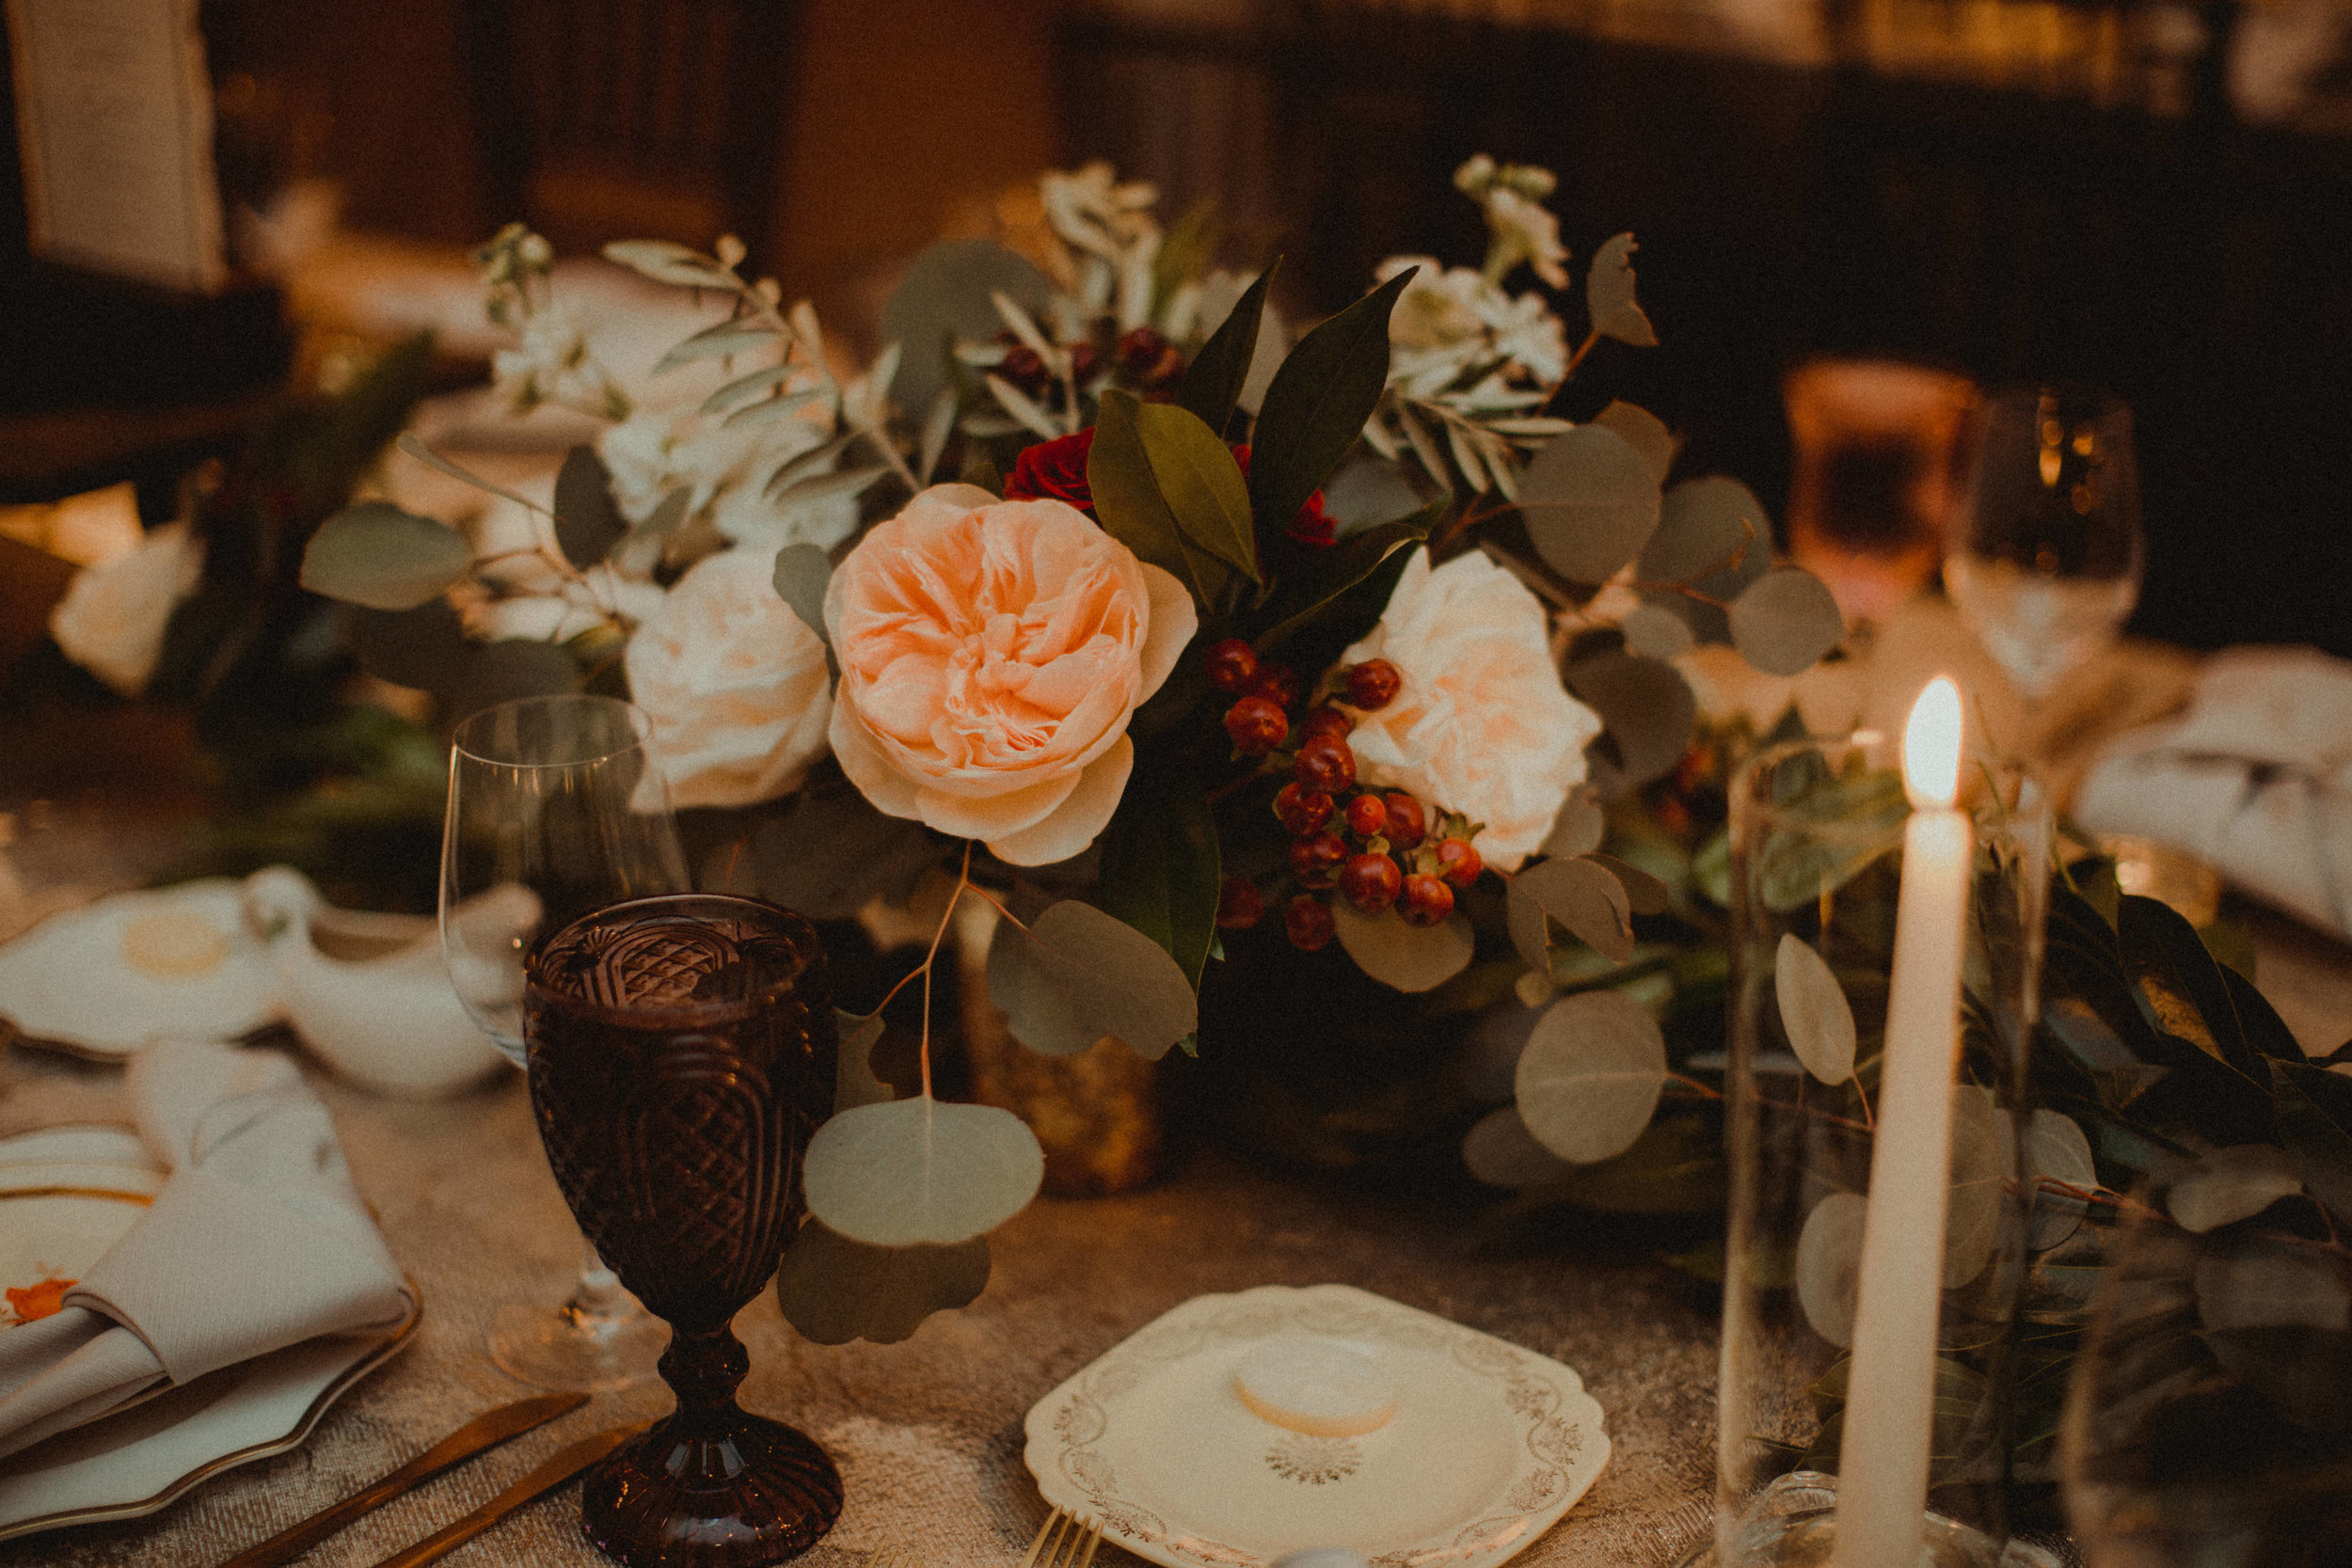 Floral centerpieces with red berries and blush juliet roses